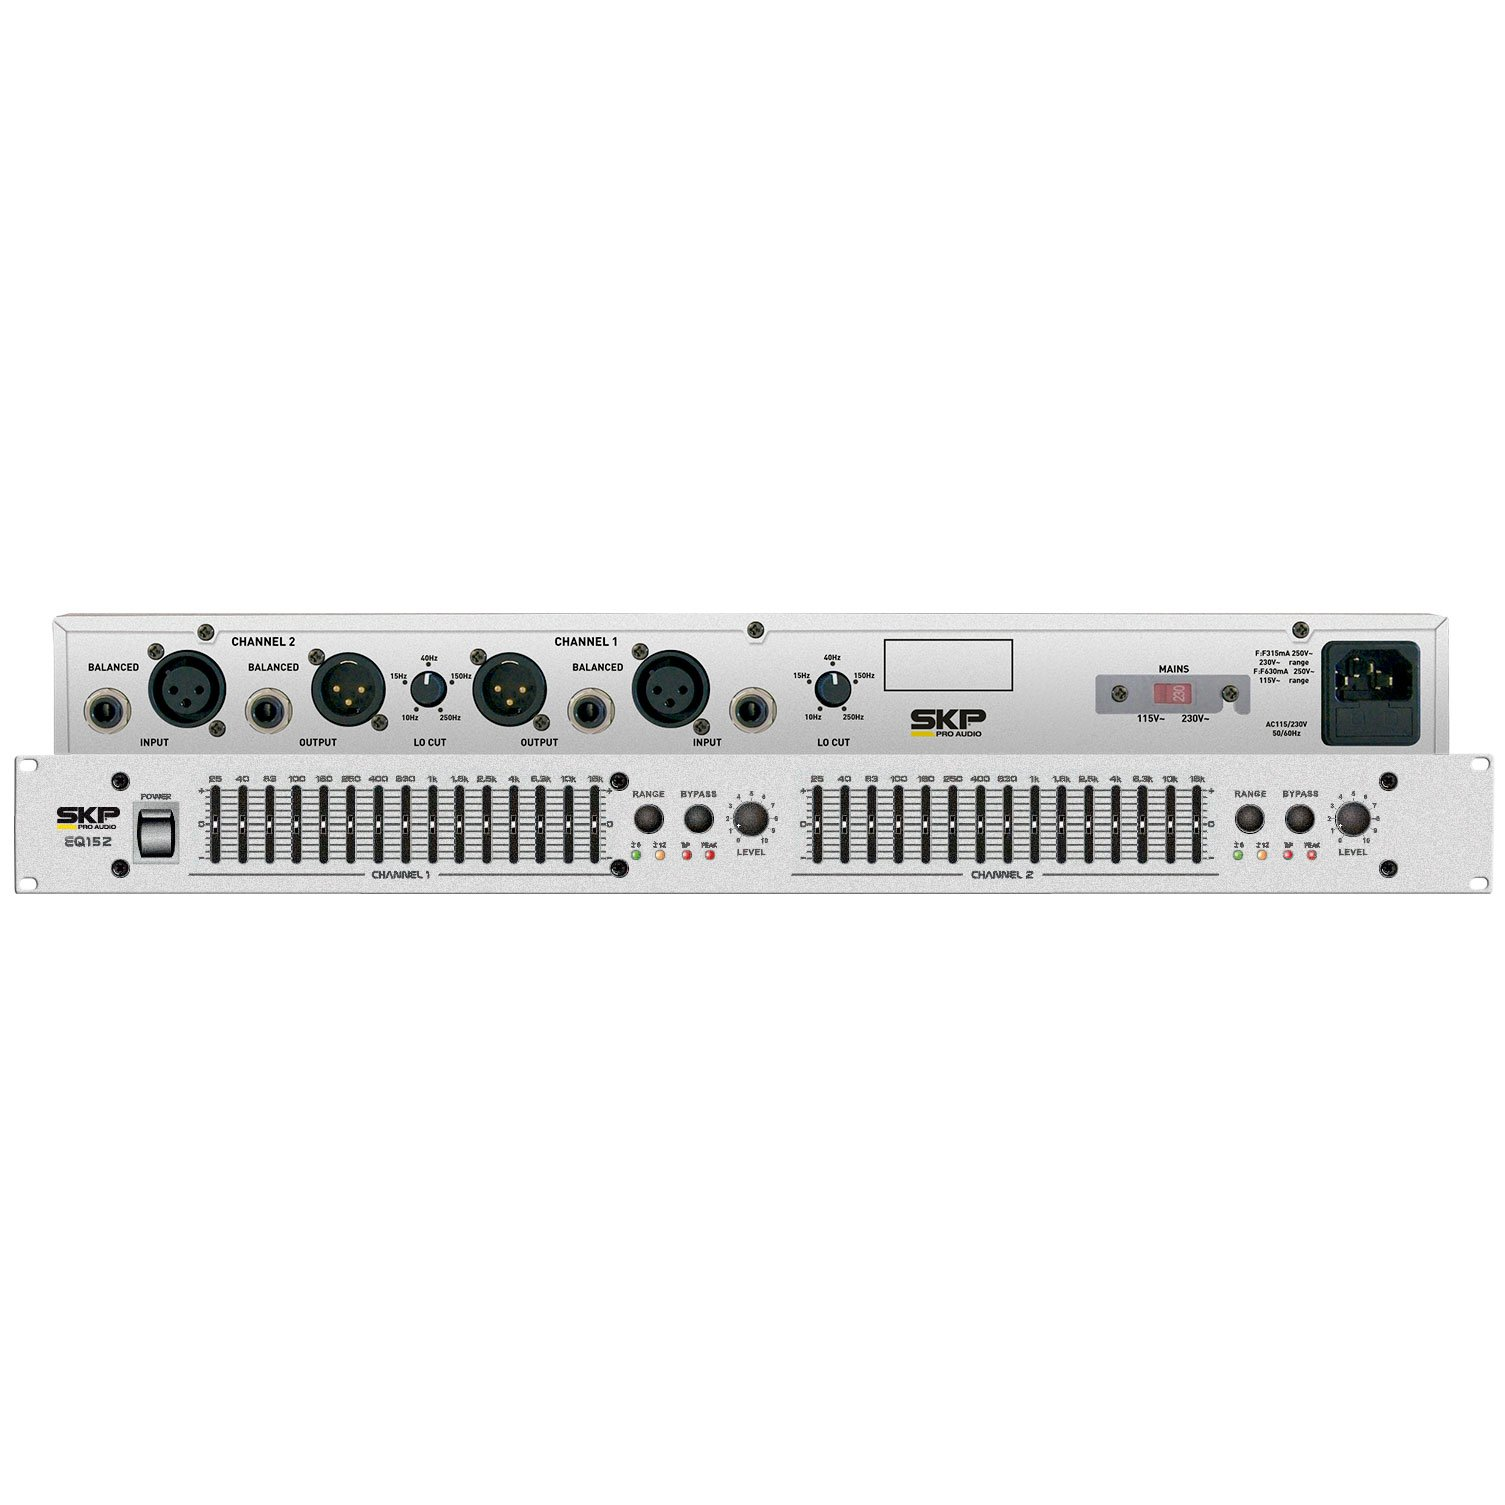 SKP PRO AUDIO EQ-152 GRAPHIC EQUALIZER 2x15 standard 2/3 octaves EQ/Bypass by SKP Pro Audio (Image #3)